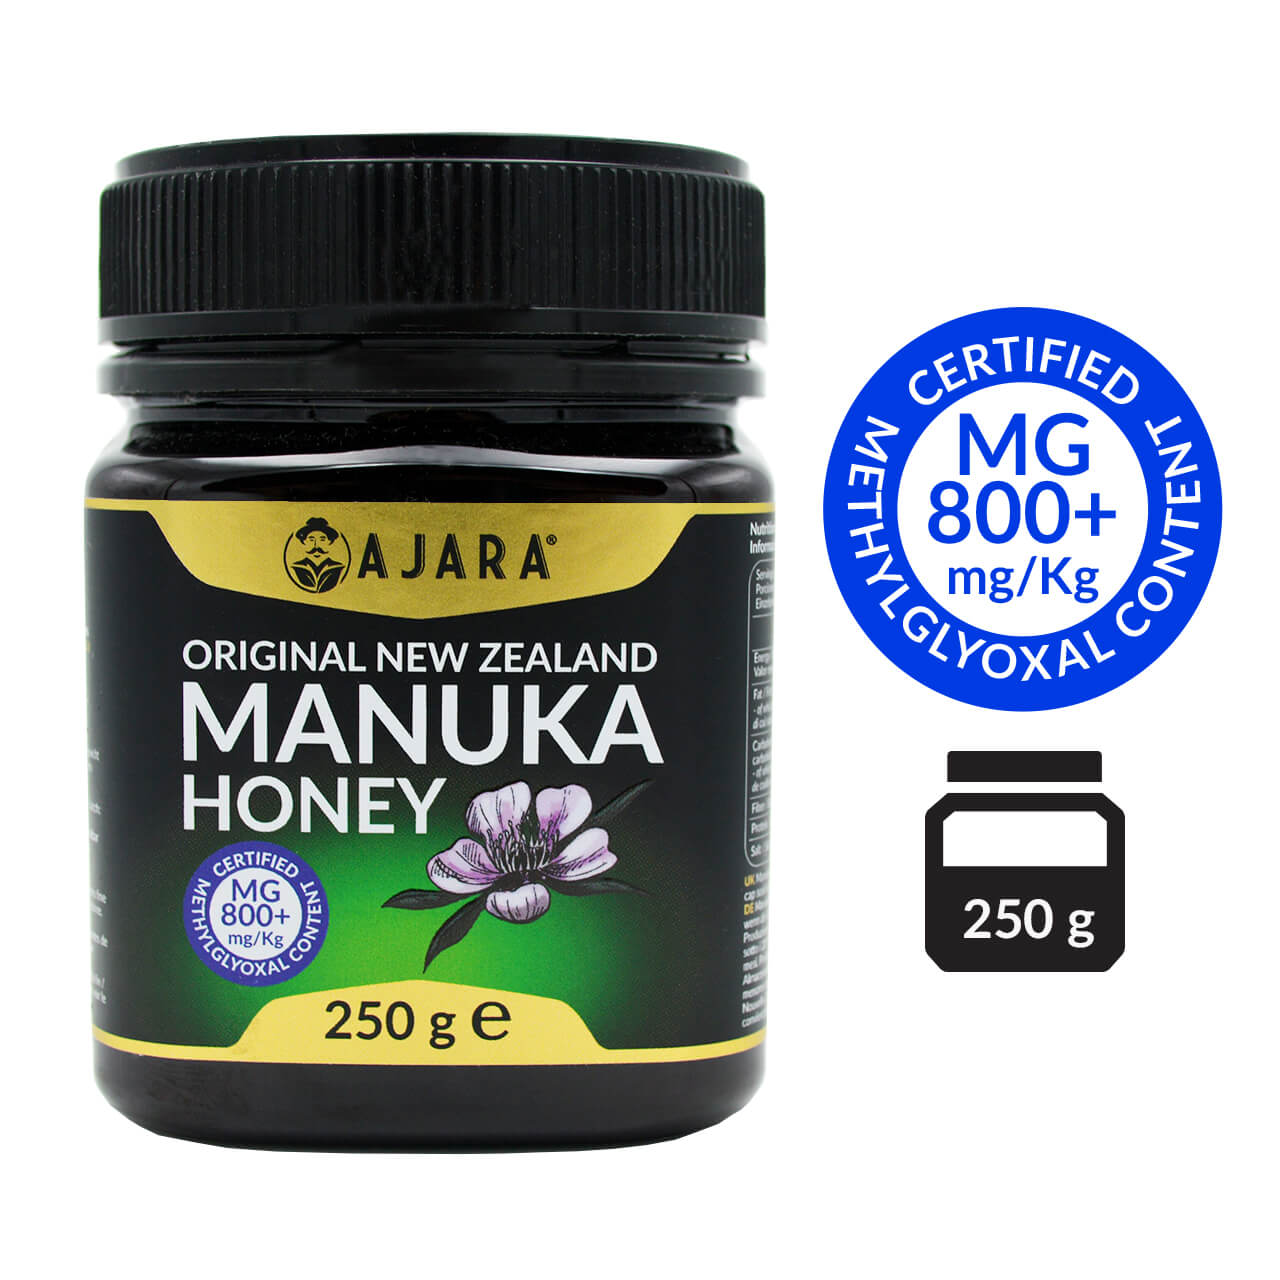 Manuka honey MG 800+ 250g